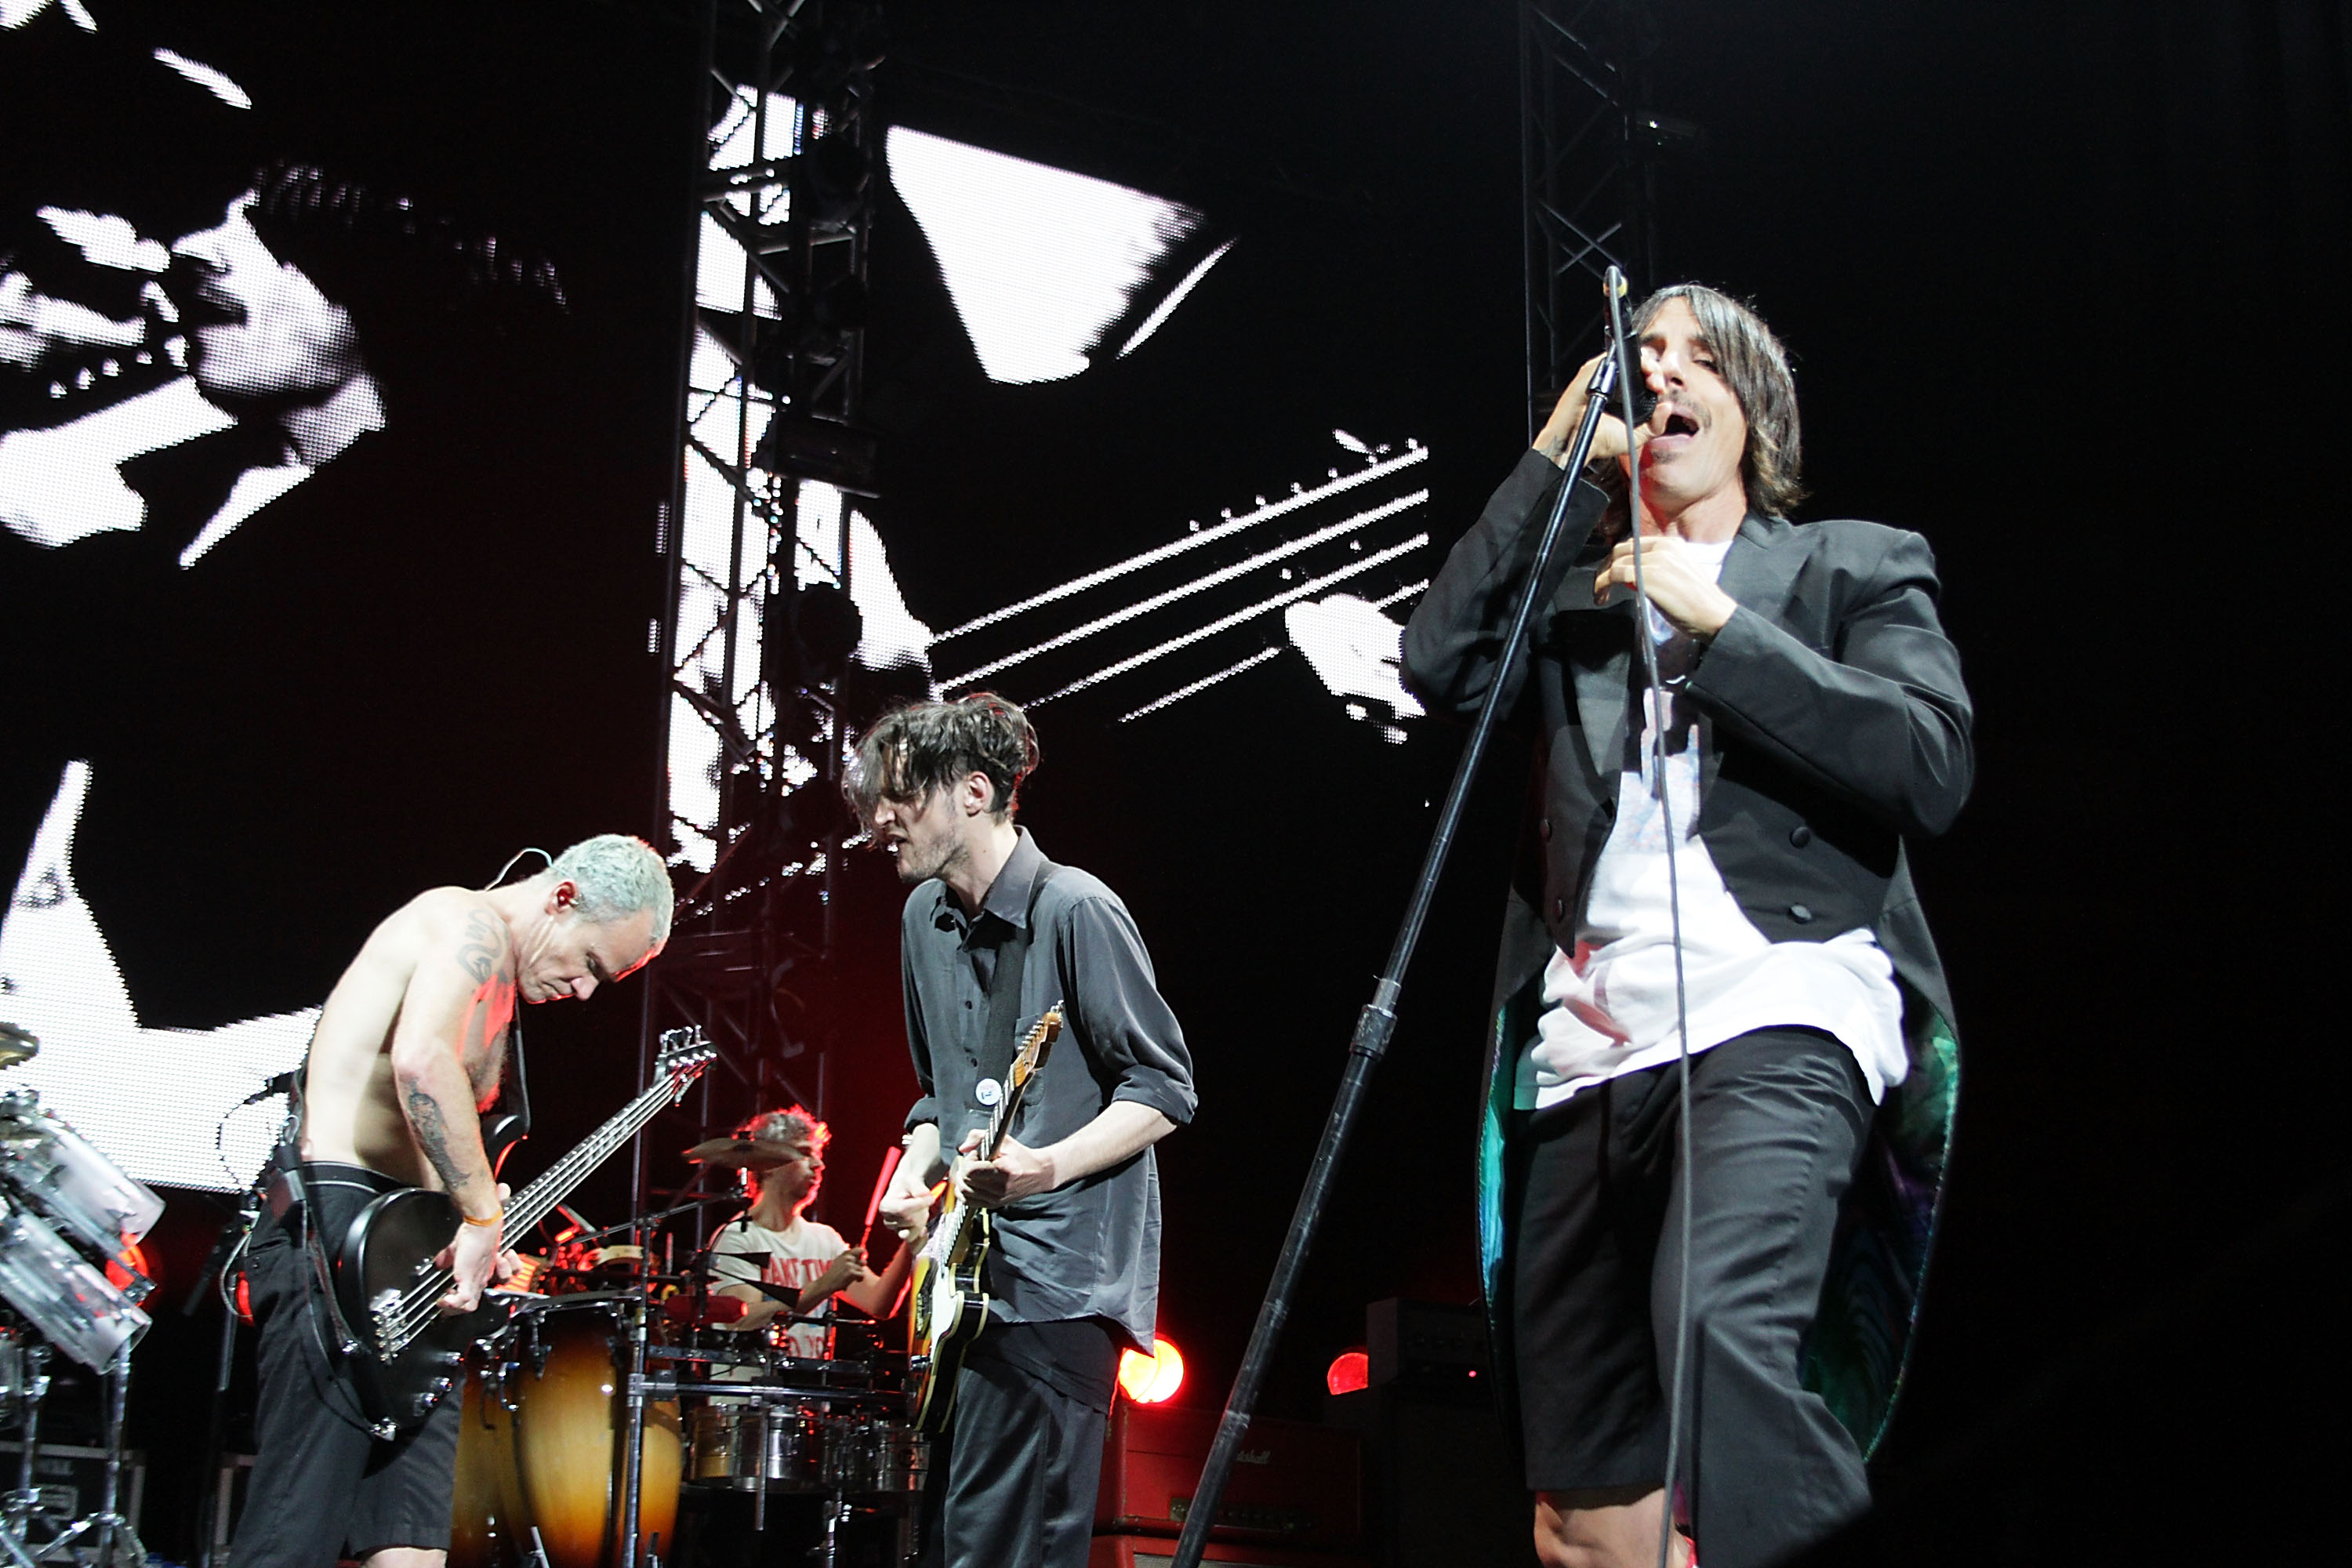 SAN JUAN, PUERTO RICO - APRIL 06:  (L-R) Flea, Josh Klinghoffer and Anthony Kiedis of Red Hot Chili Peppers perform at Colise